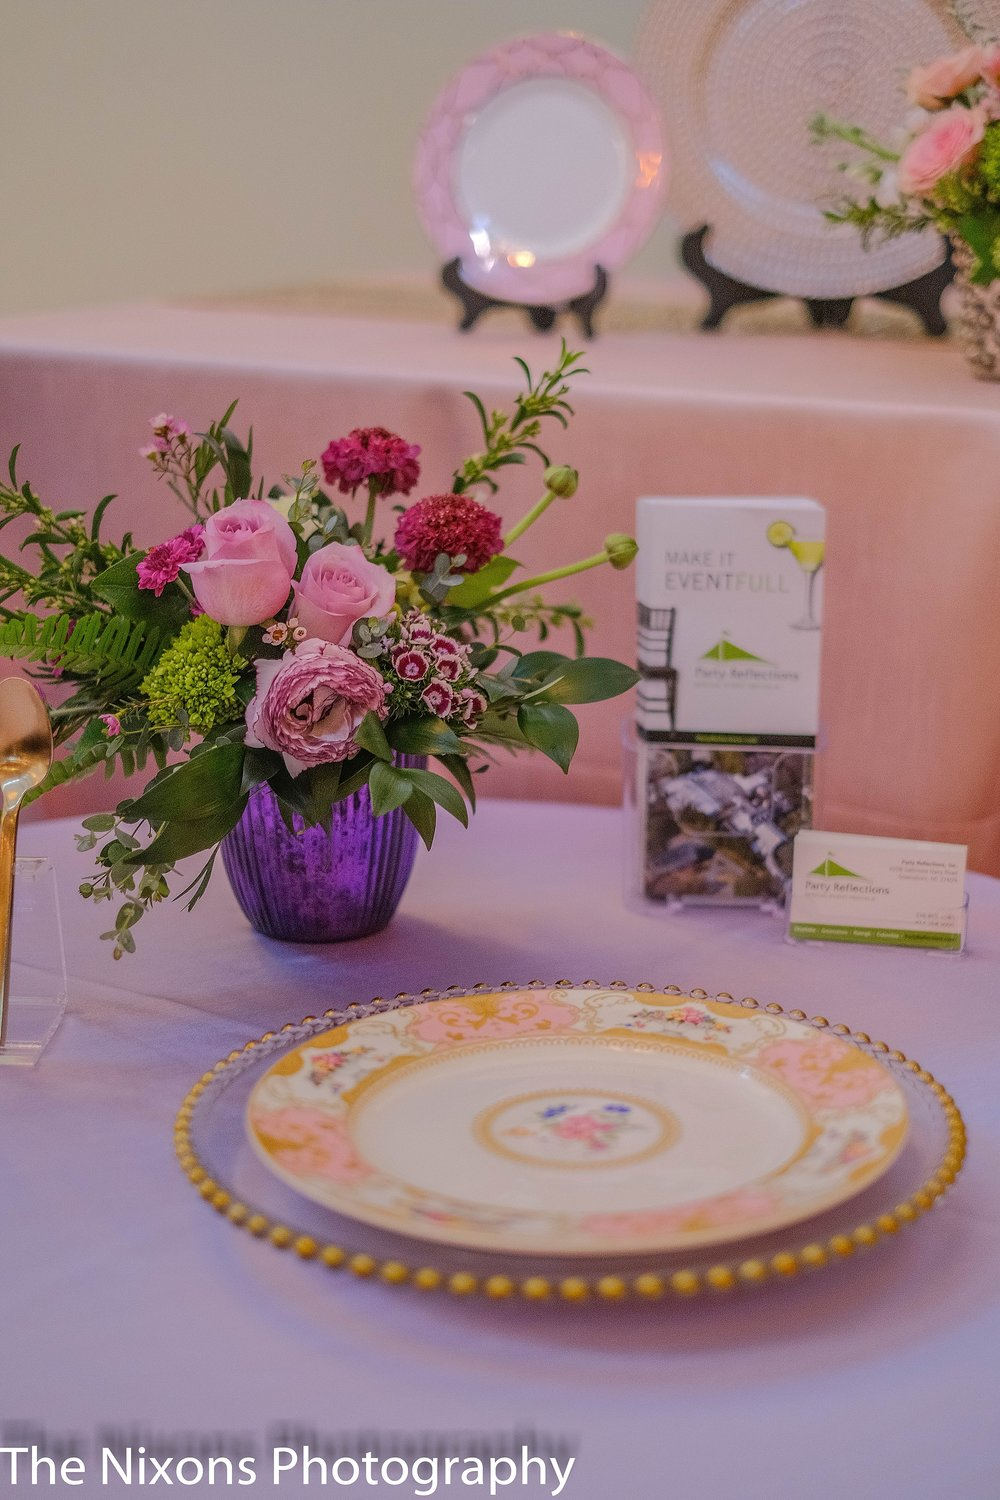 Photo by The Nixons Photography, Flowers by Botanica, Rentals by Party Reflections